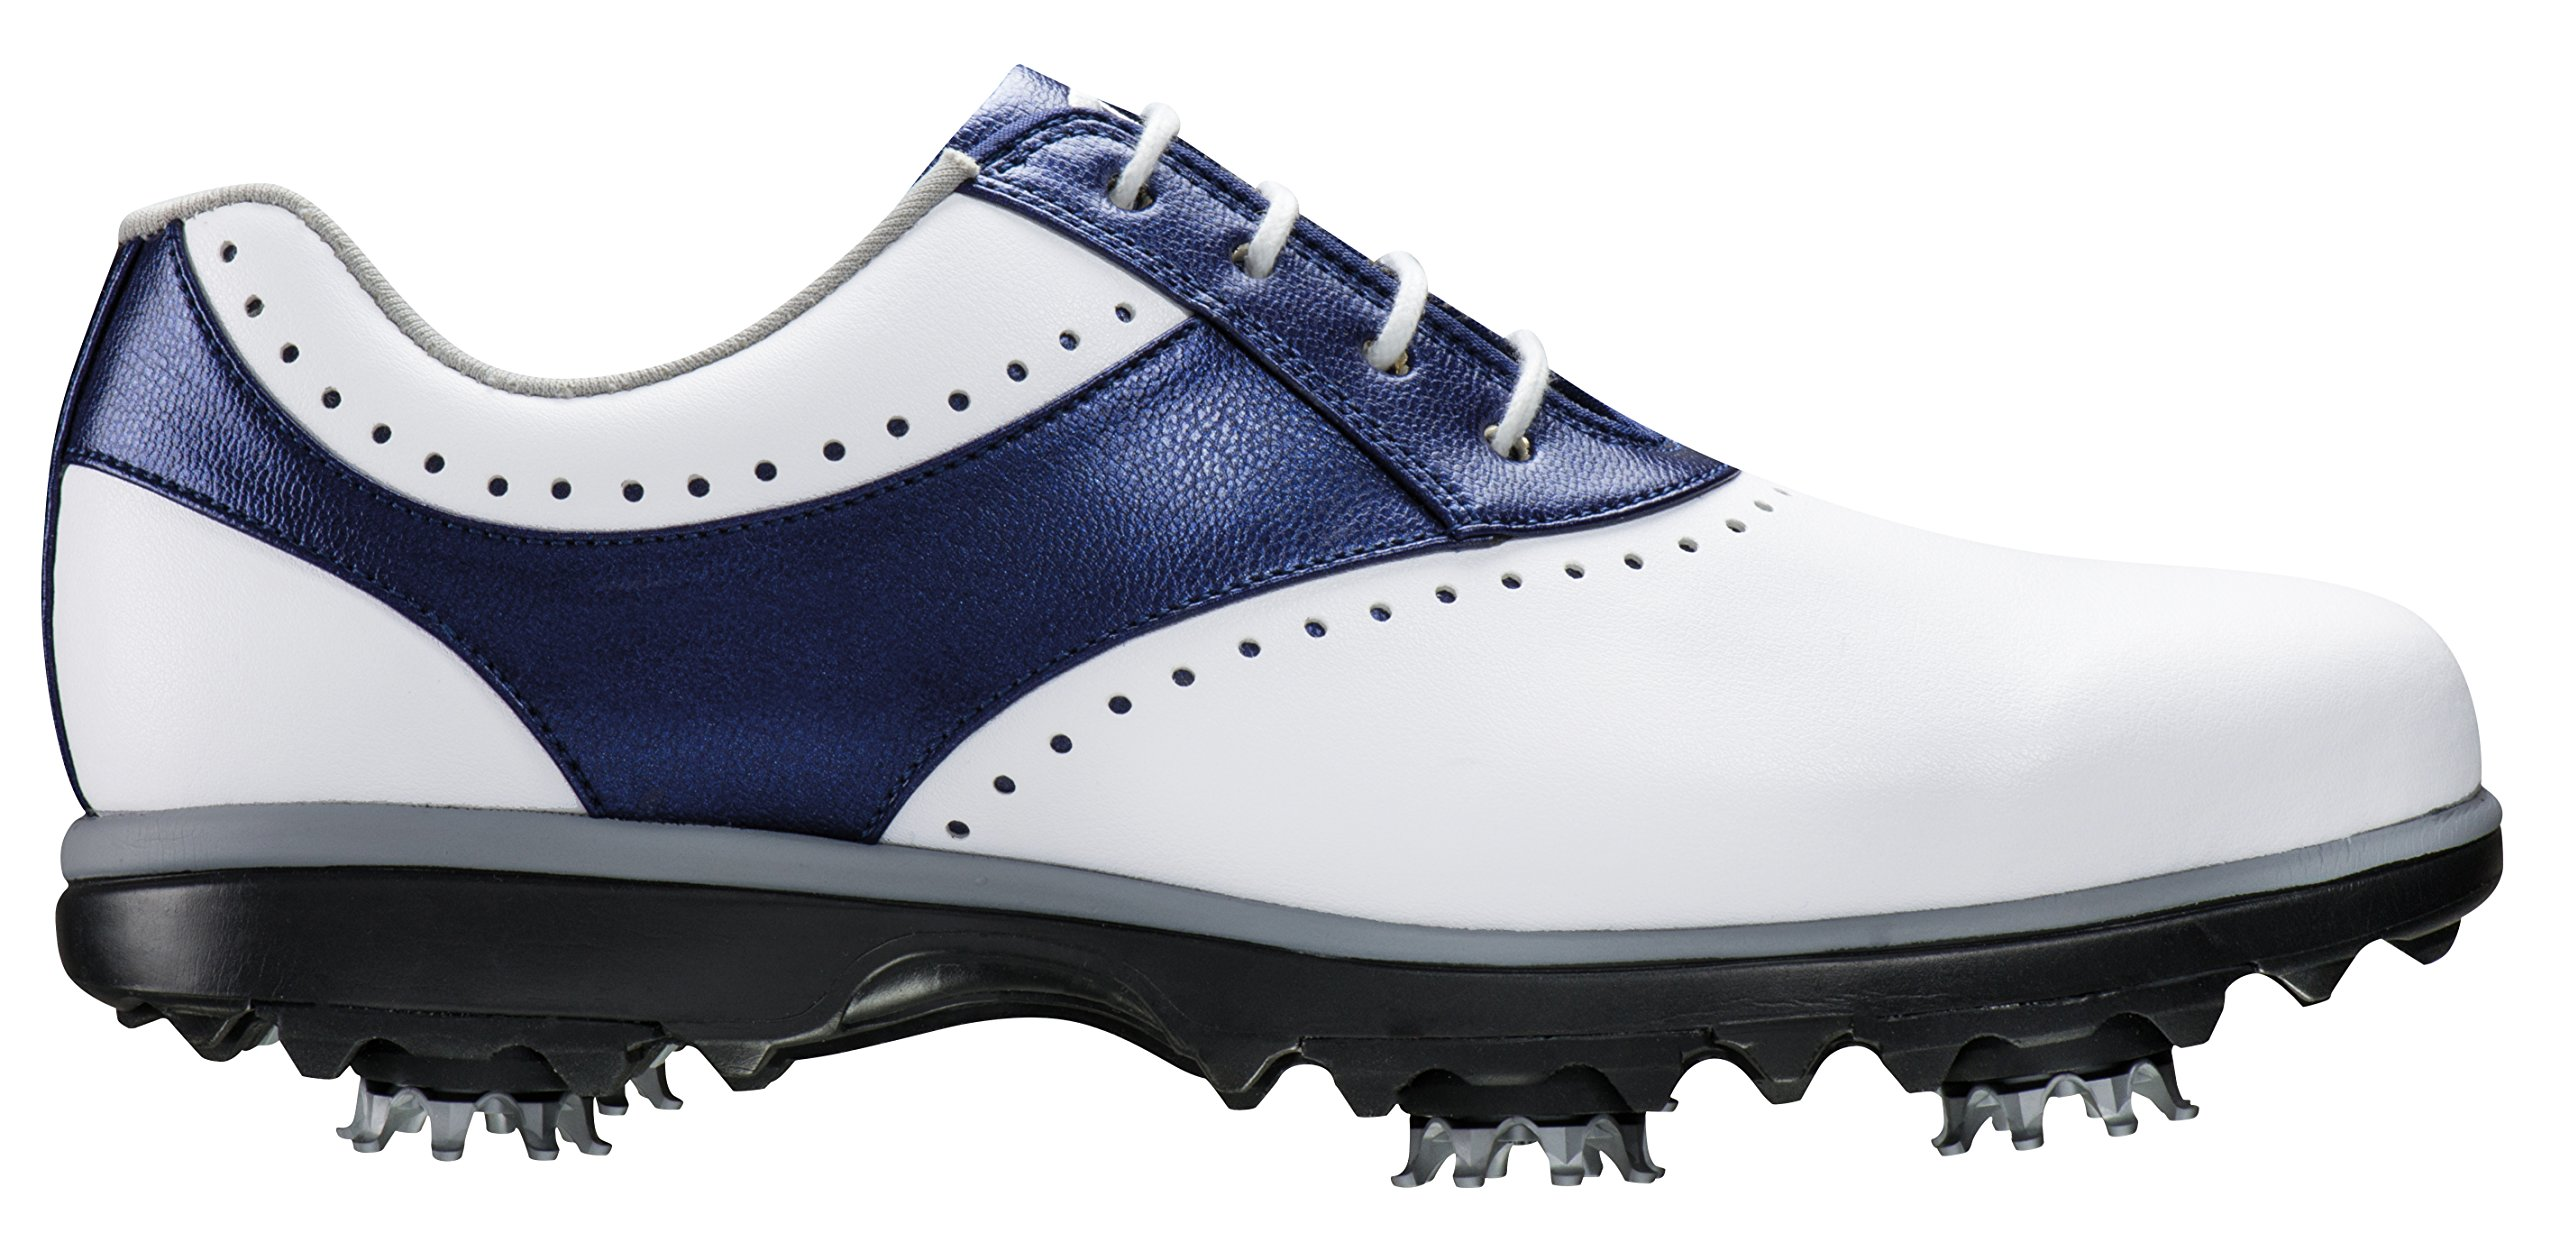 FootJoy Women's eMerge Spiked Golf Shoes, Close-out (7 B(M) US, White/Navy Linen 93900)